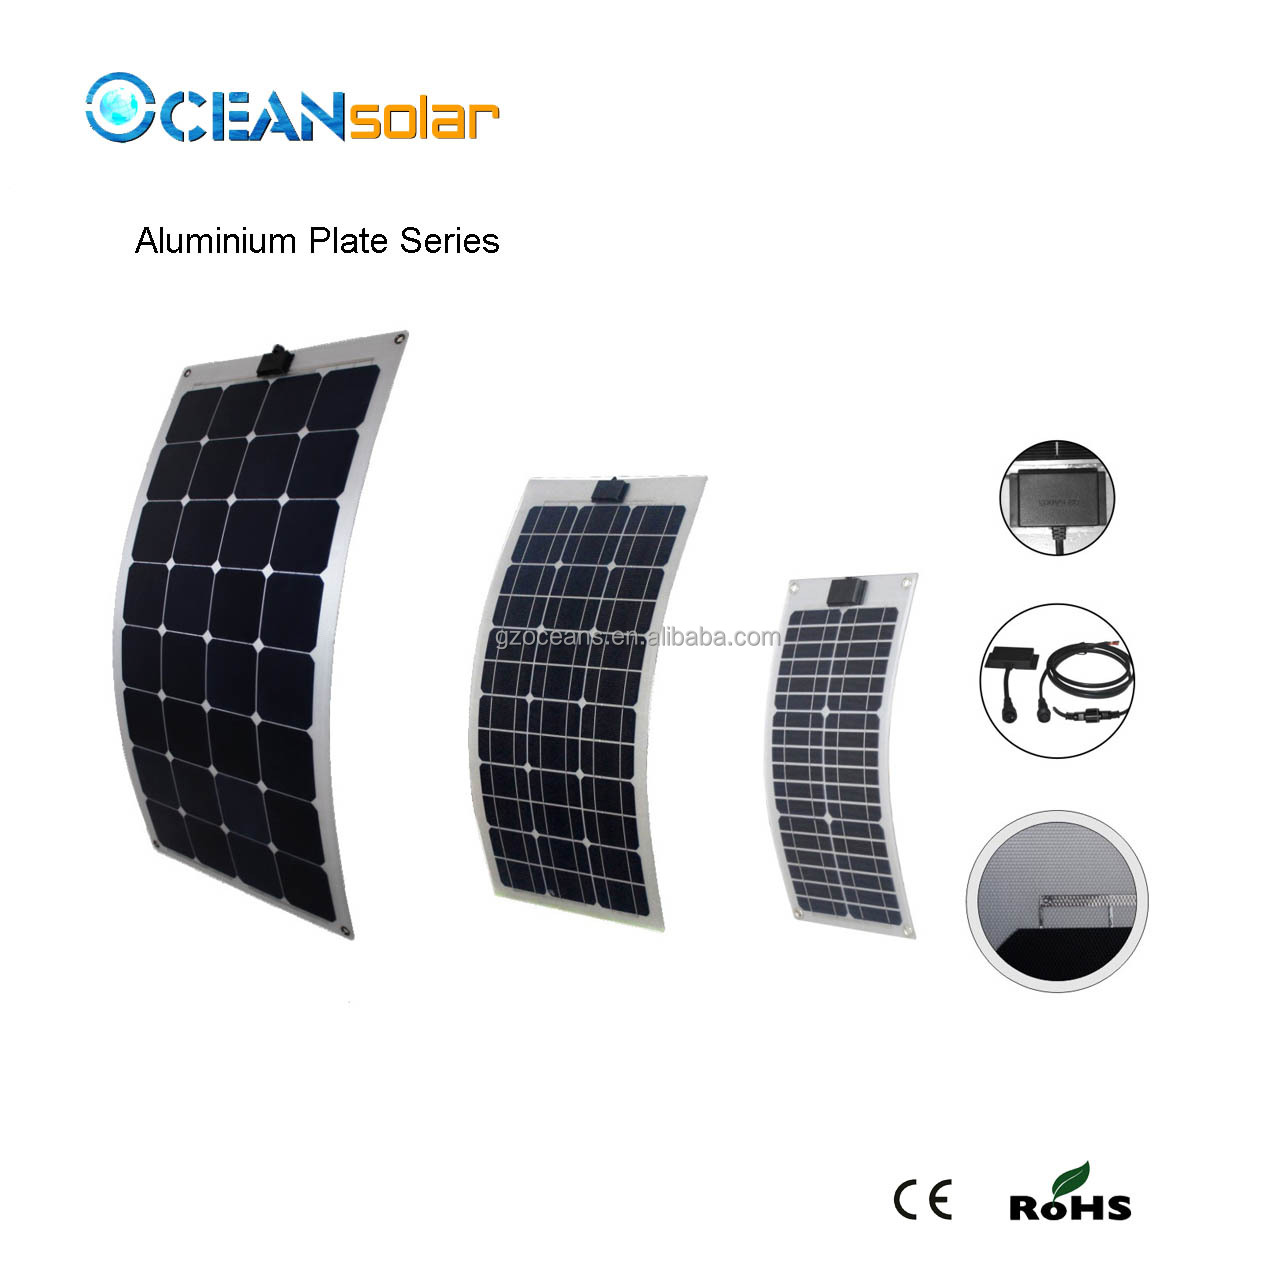 75W Semi Flexible Solar Panel thin solar panel power caravan/boat/golf cart solar panel wholesale from China